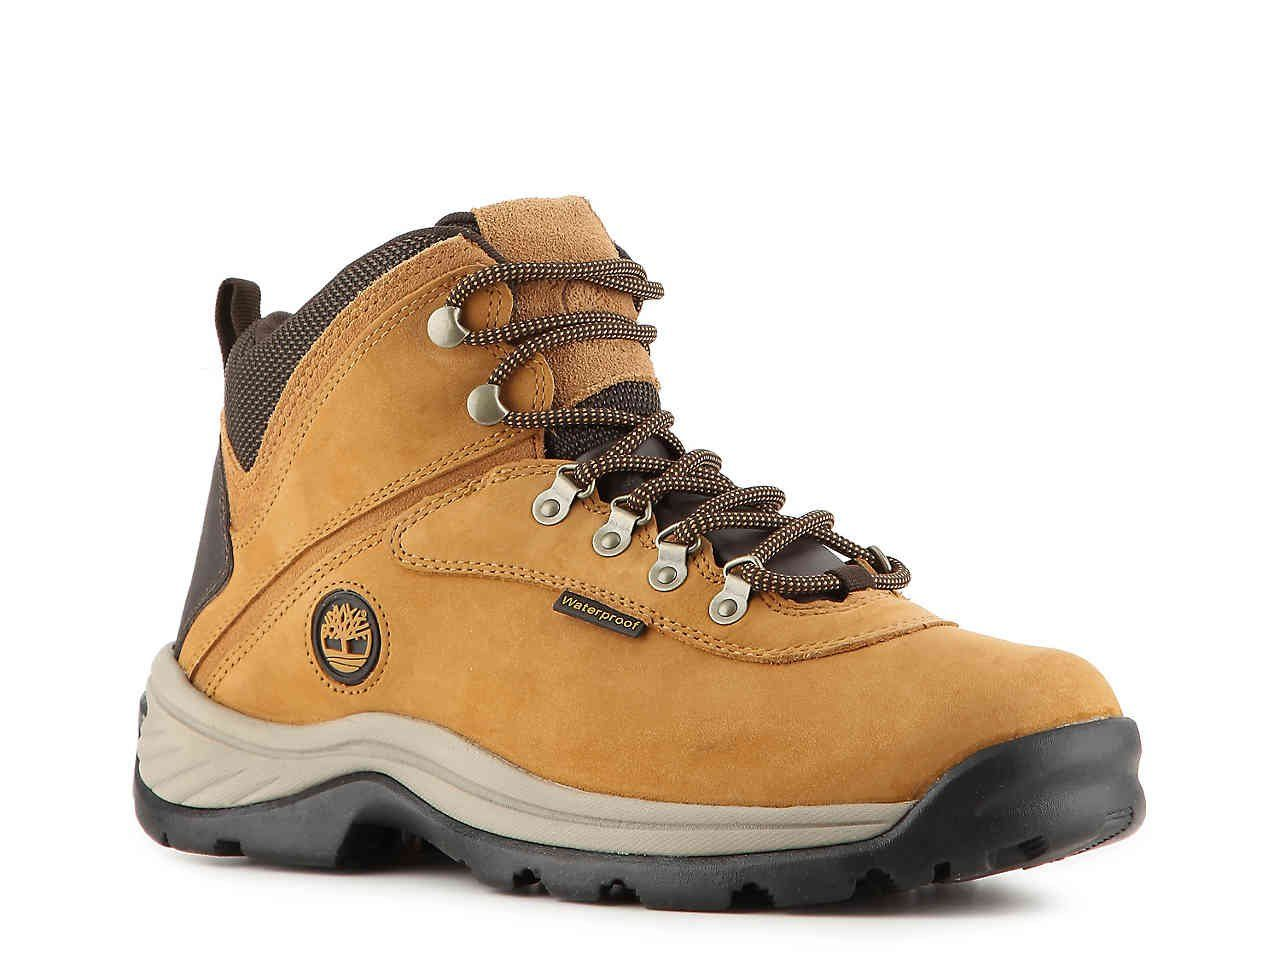 6a2ec6fed24 Timberland 14176 Mens Mid White Ledge WP Boot Wheat 9.5 W US * For ...